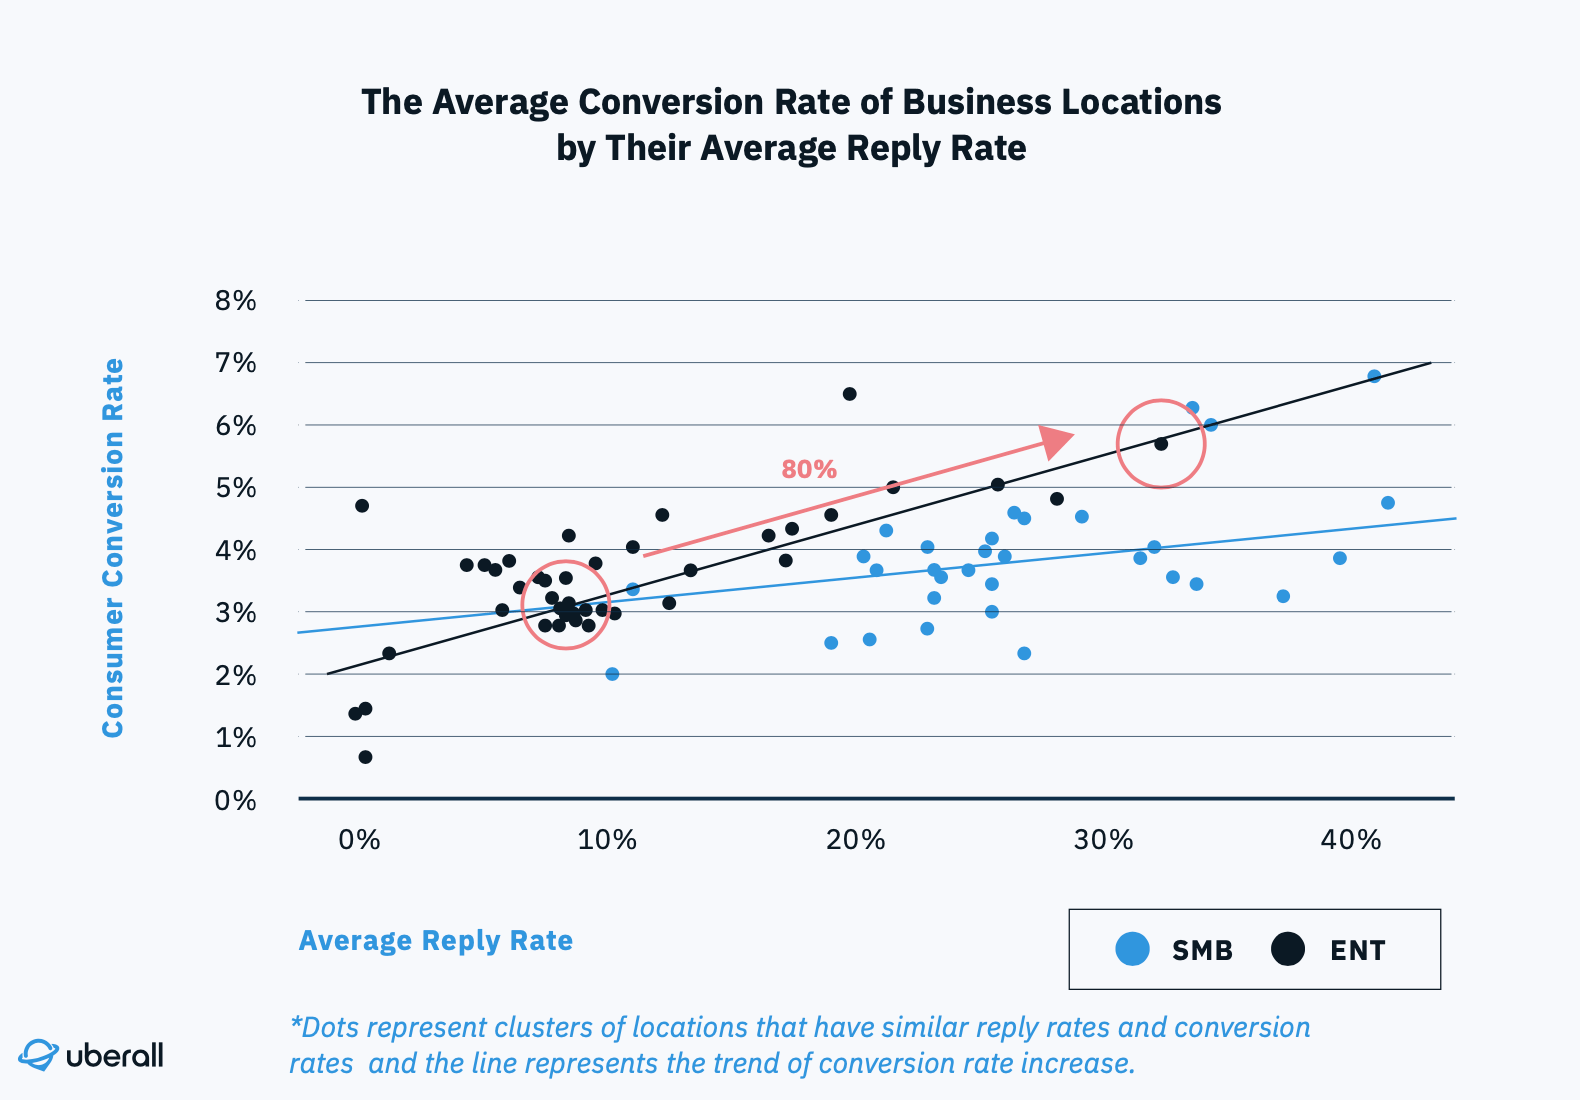 Graph showing conversion rate from 3 to almost 6 percent - an increase from responding to online reviews